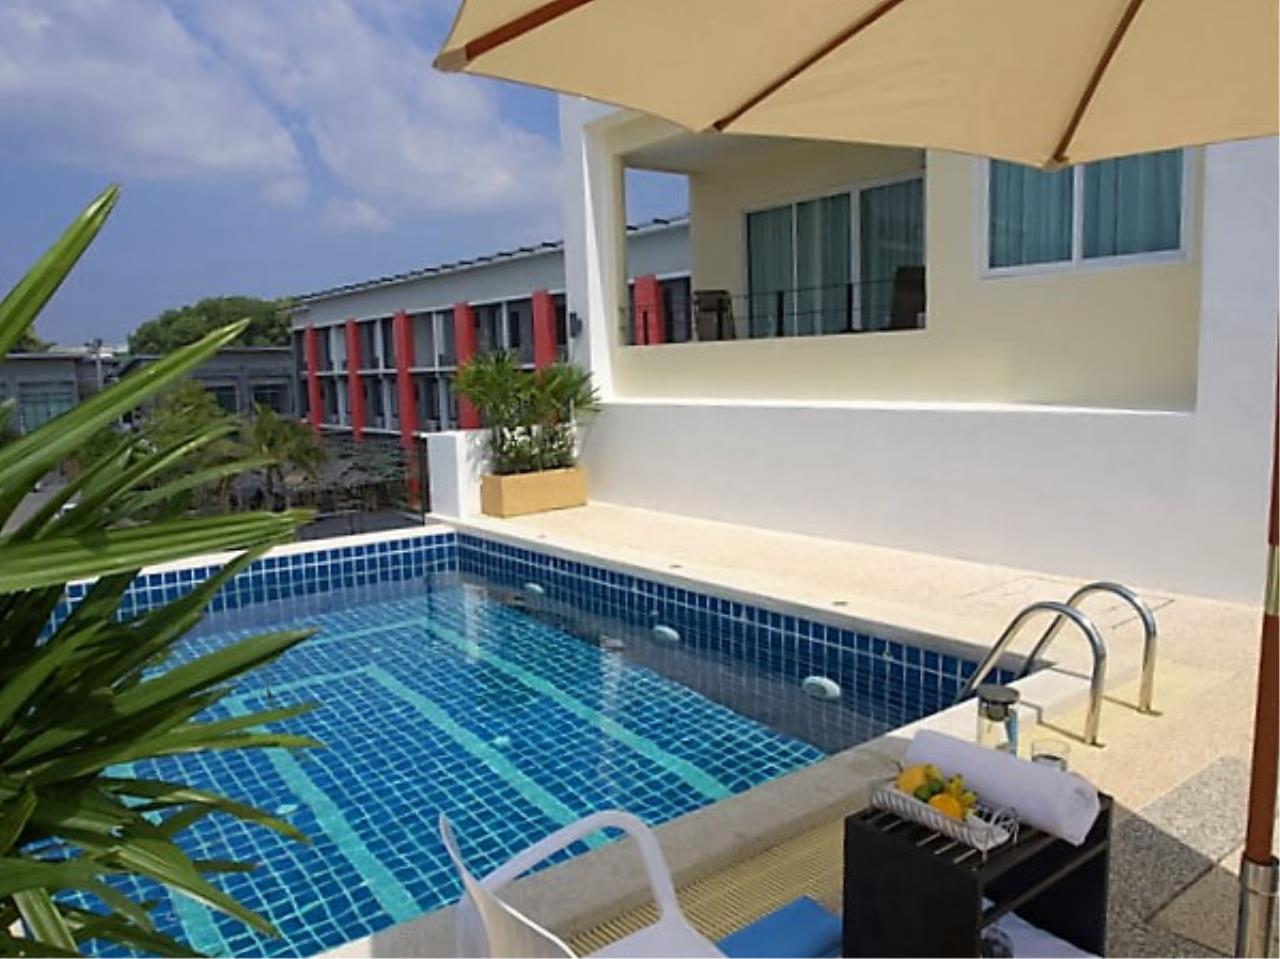 REAL Phuket  Agency's Investment Property - Fully Operational 7-Floor Condo Building with 22 Units 12